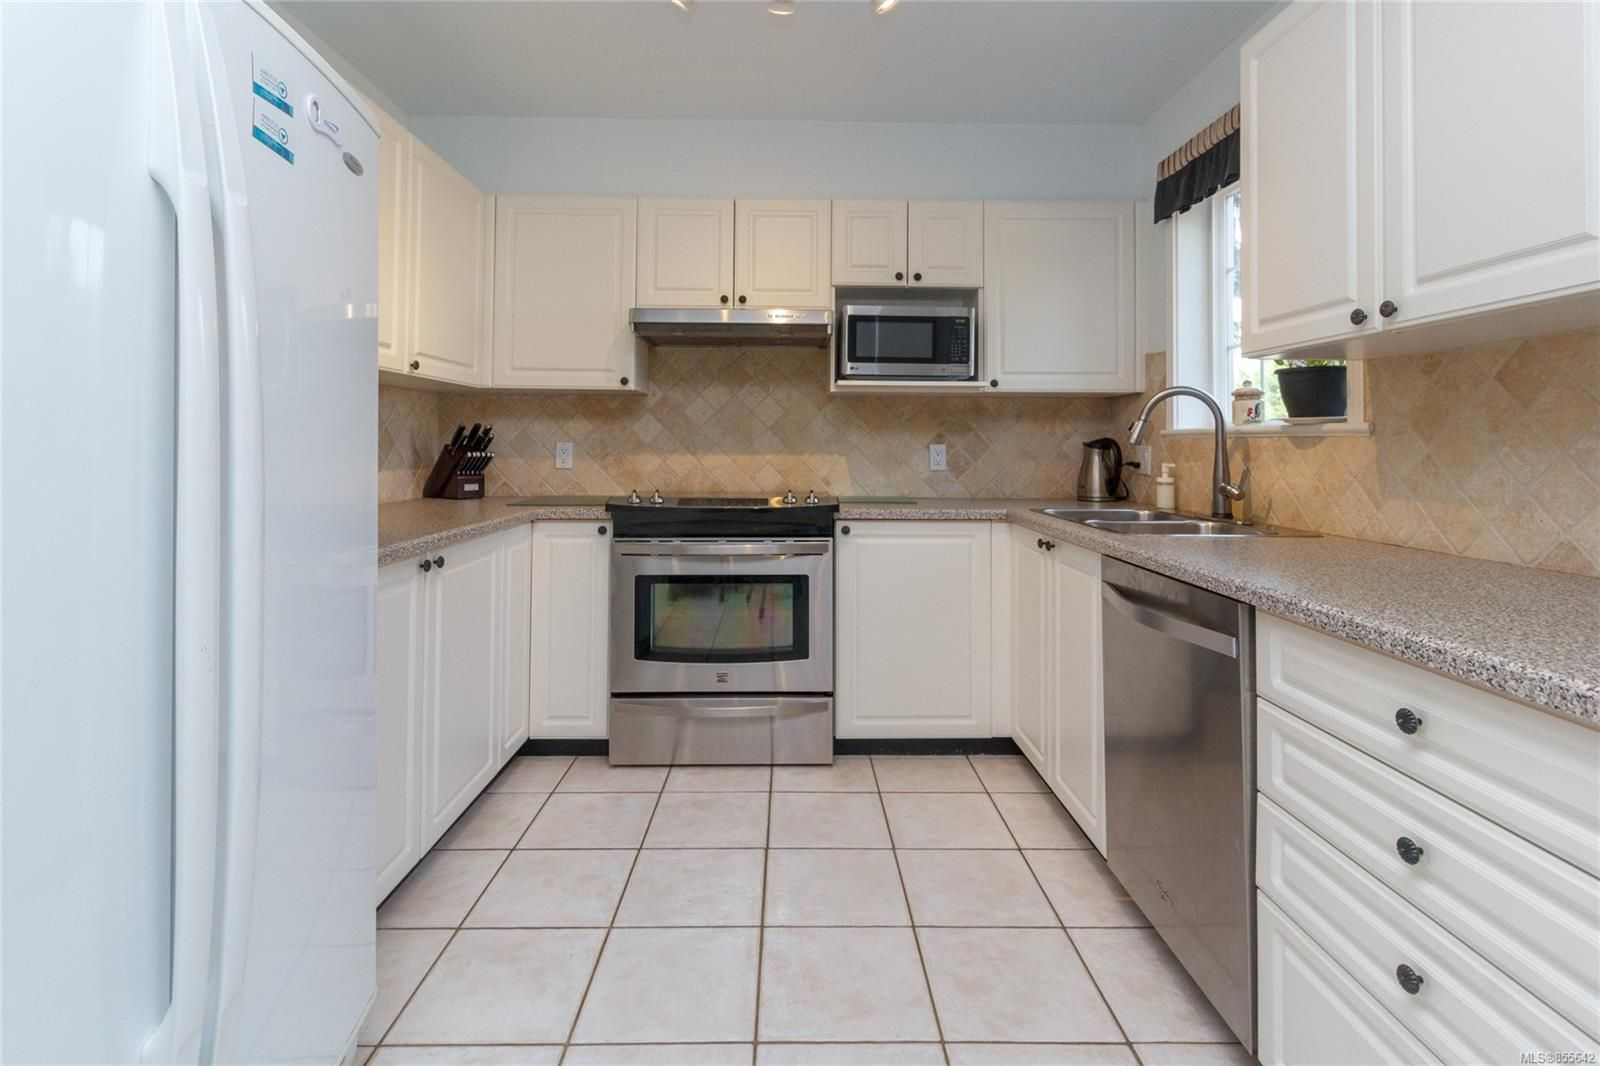 Photo 10: Photos: 52 14 Erskine Lane in : VR Hospital Row/Townhouse for sale (View Royal)  : MLS®# 855642